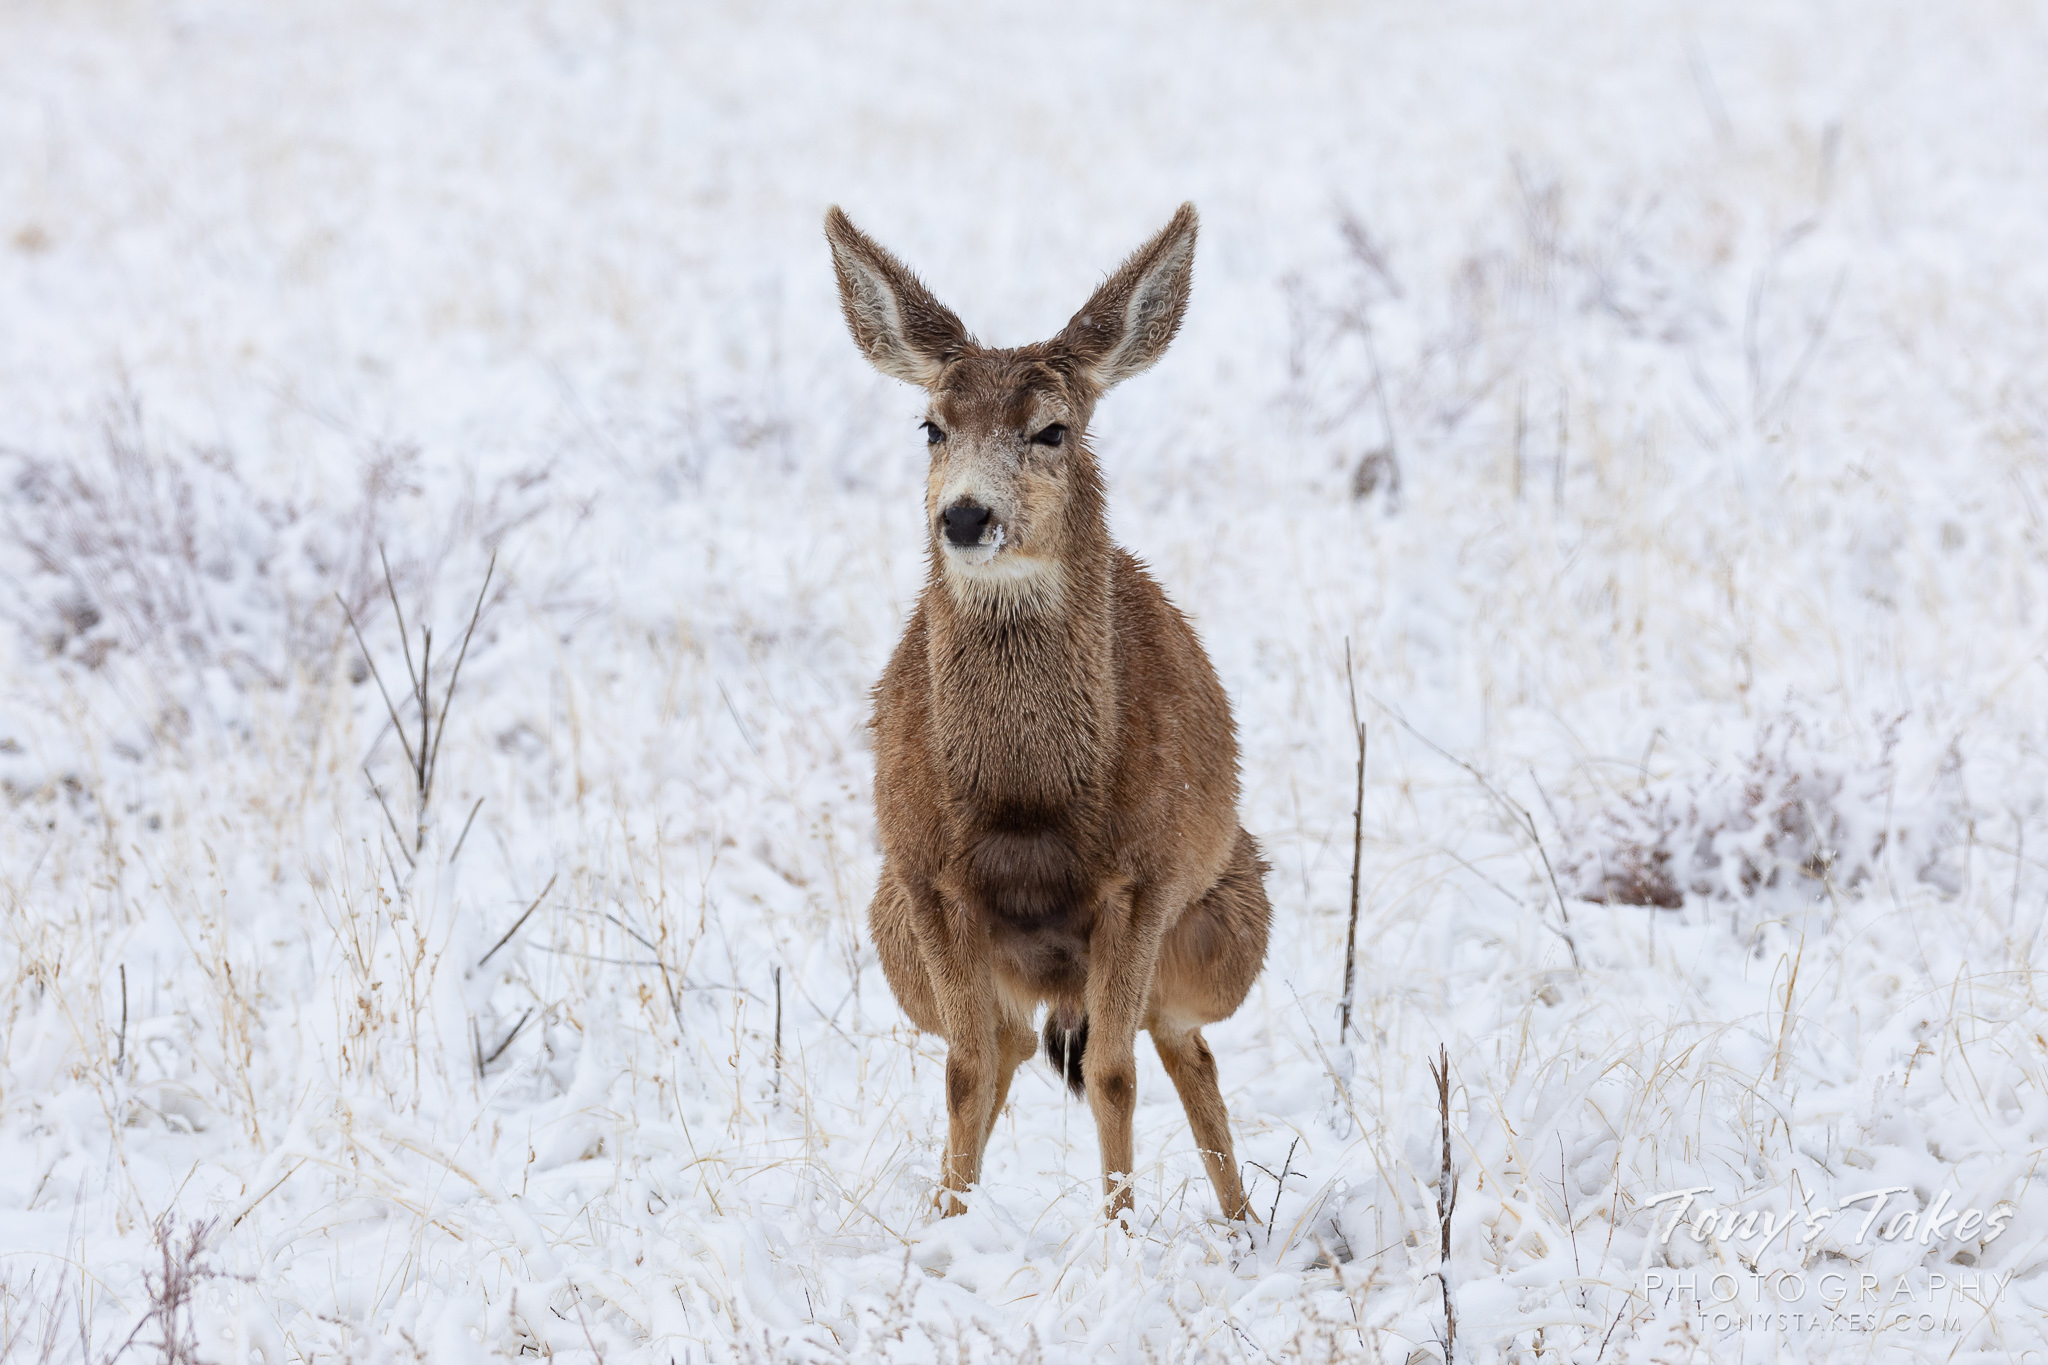 A mule deer buck relieves itself in the snow. (© Tony's Takes)